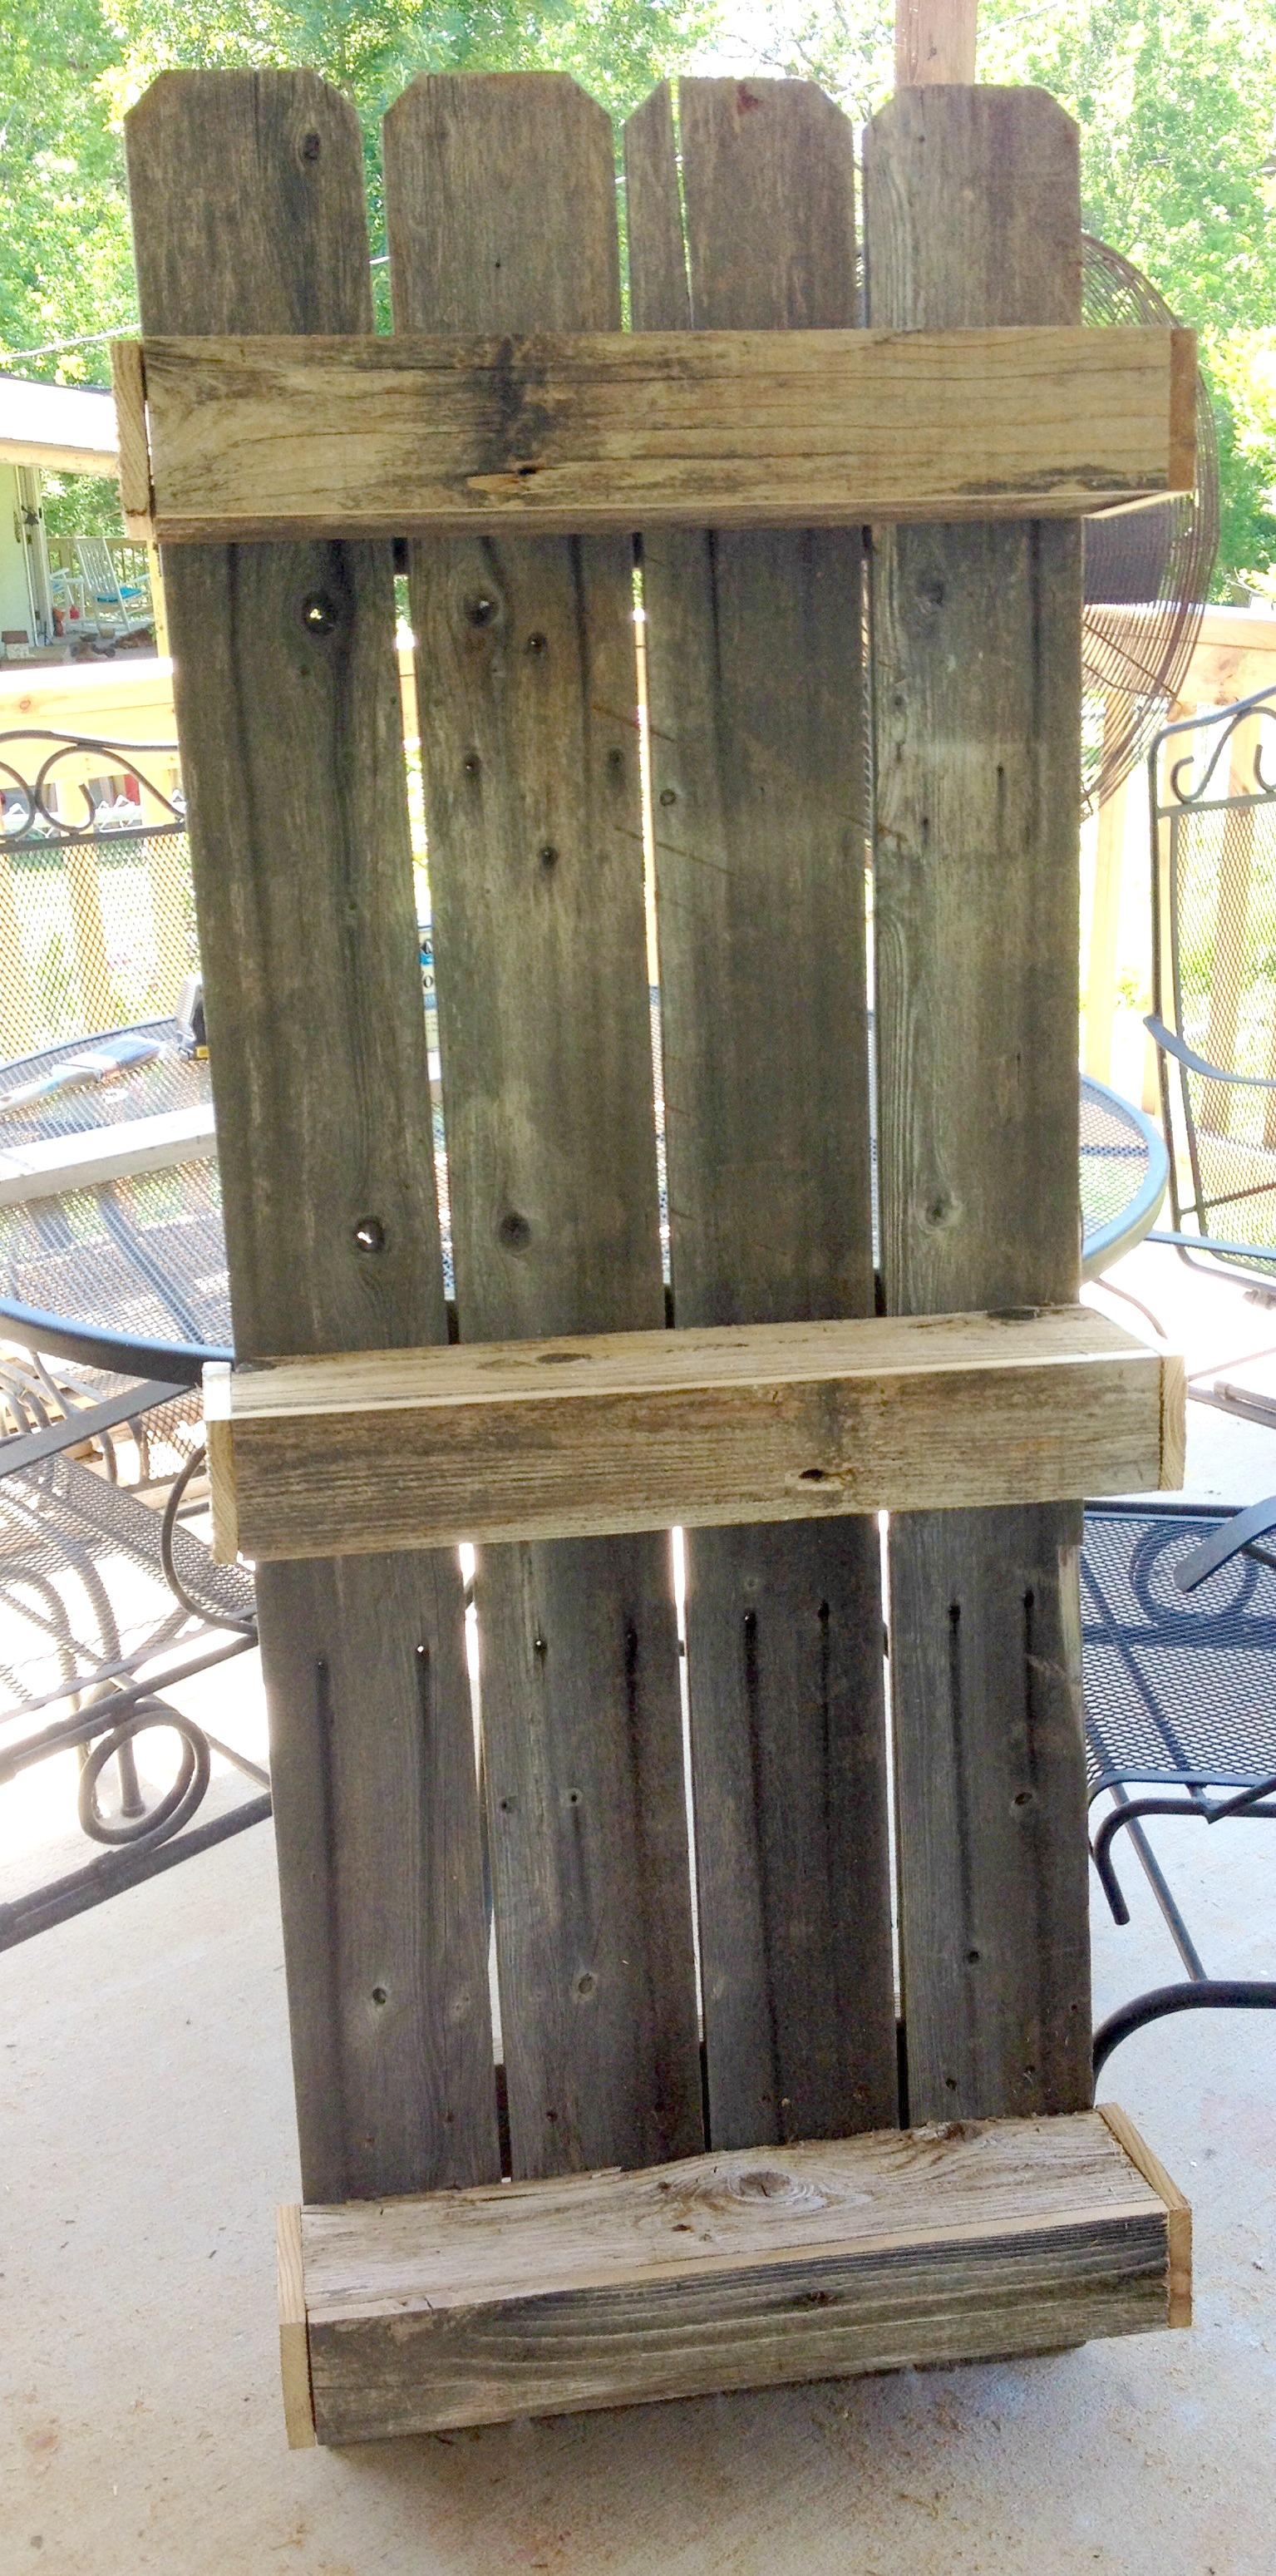 Remodelaholic build an easy rustic bathroom shelf rustic wall shelf for the bathroom built from fencing the weekend country girl on amipublicfo Images